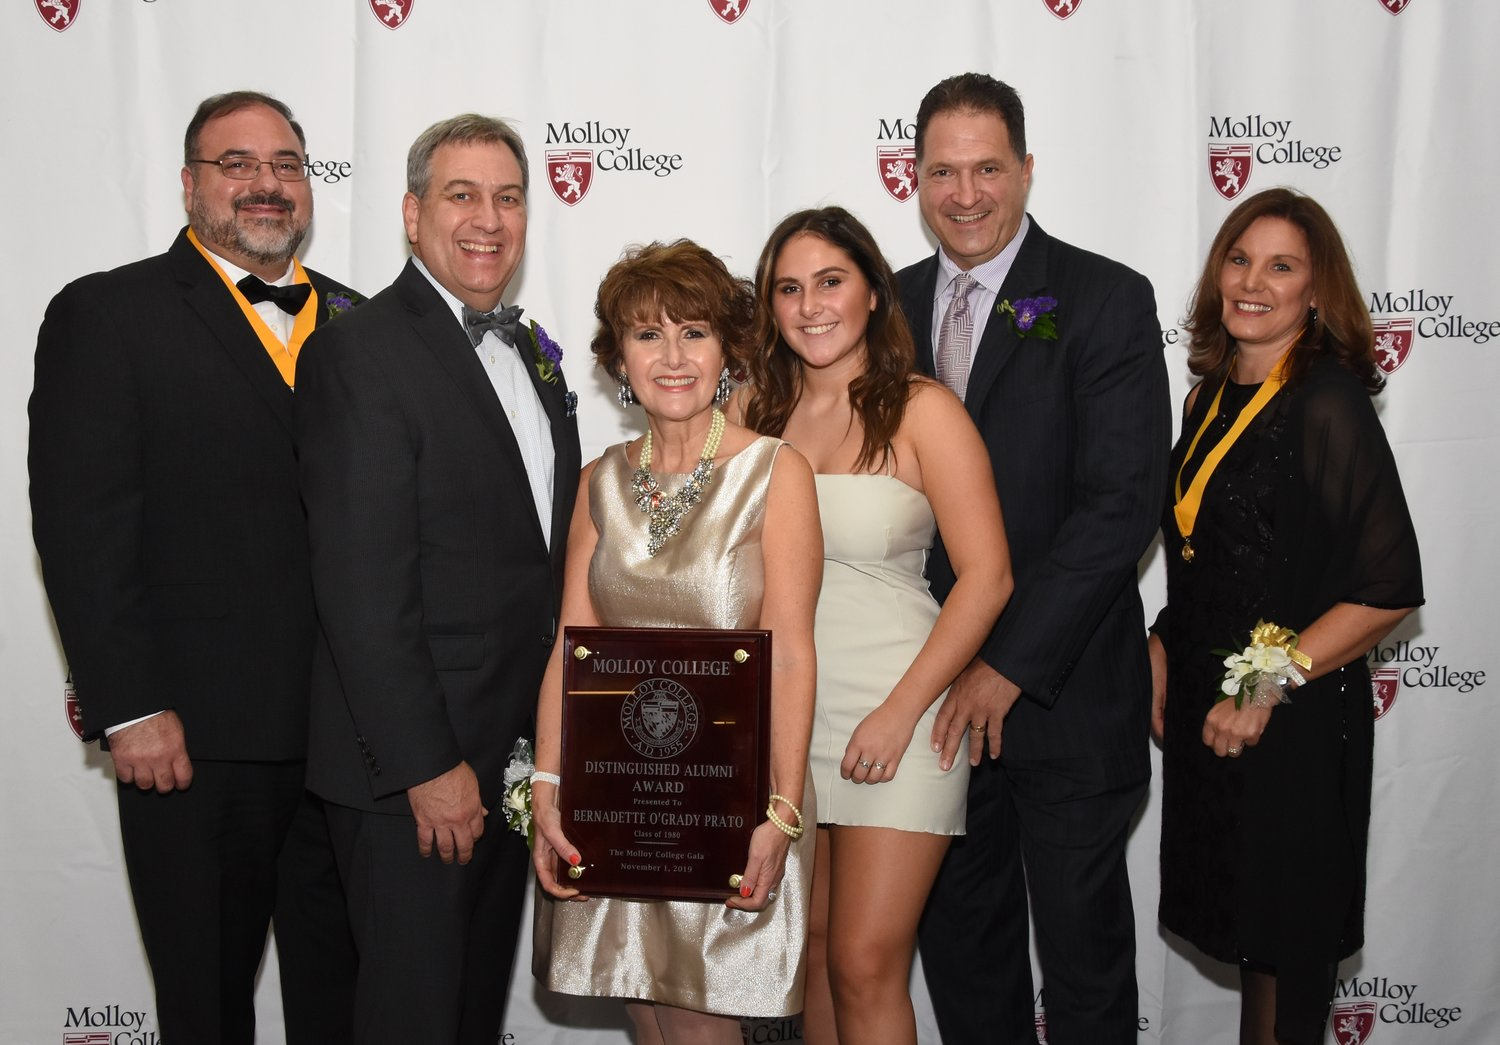 Bernadette O'Grady Prato, Class of 1980, holds her Distinguished Alumni Award and is pictured with, from left, event co-chair Salvatore Ciampo, Molloy College President Dr. Drew Bogner, her daughter, Dominique Prato, husband Gregory Prato and event co-chair Laura Farahani.